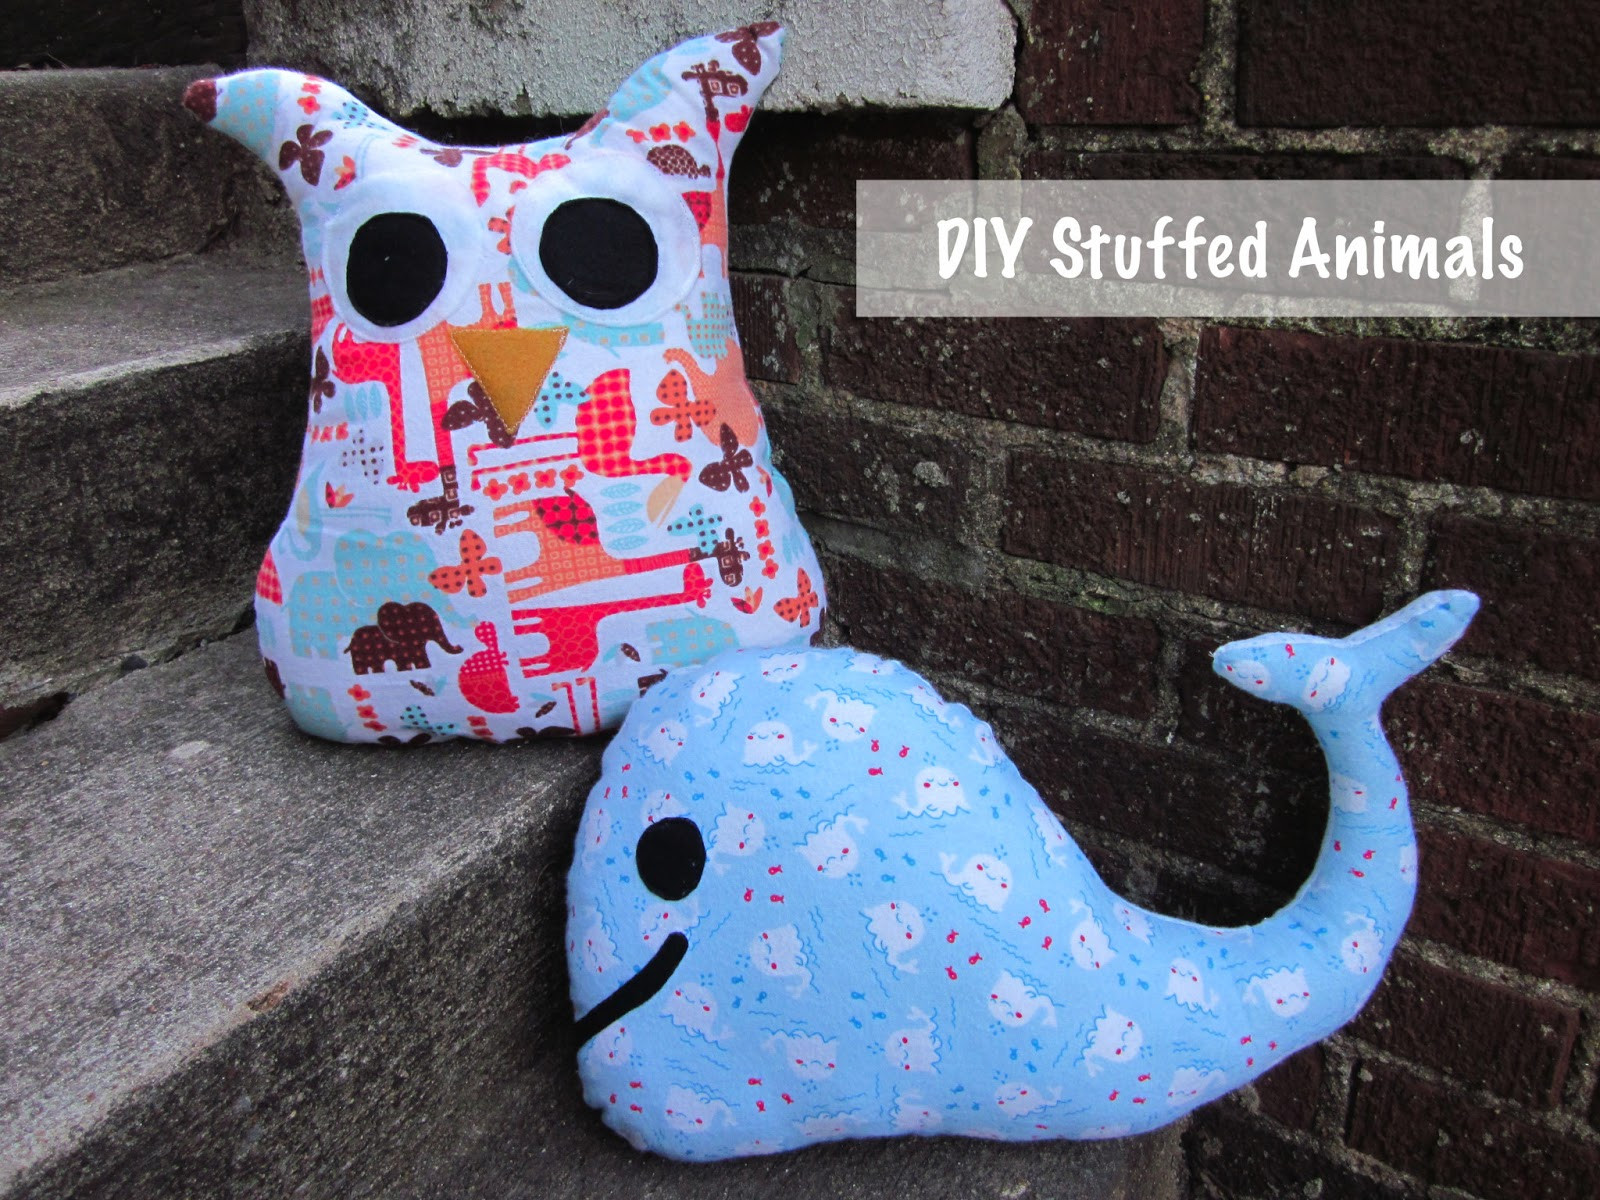 Best ideas about DIY Stuffed Animal . Save or Pin Creations by Bonnybee DIY stuffed animals Now.